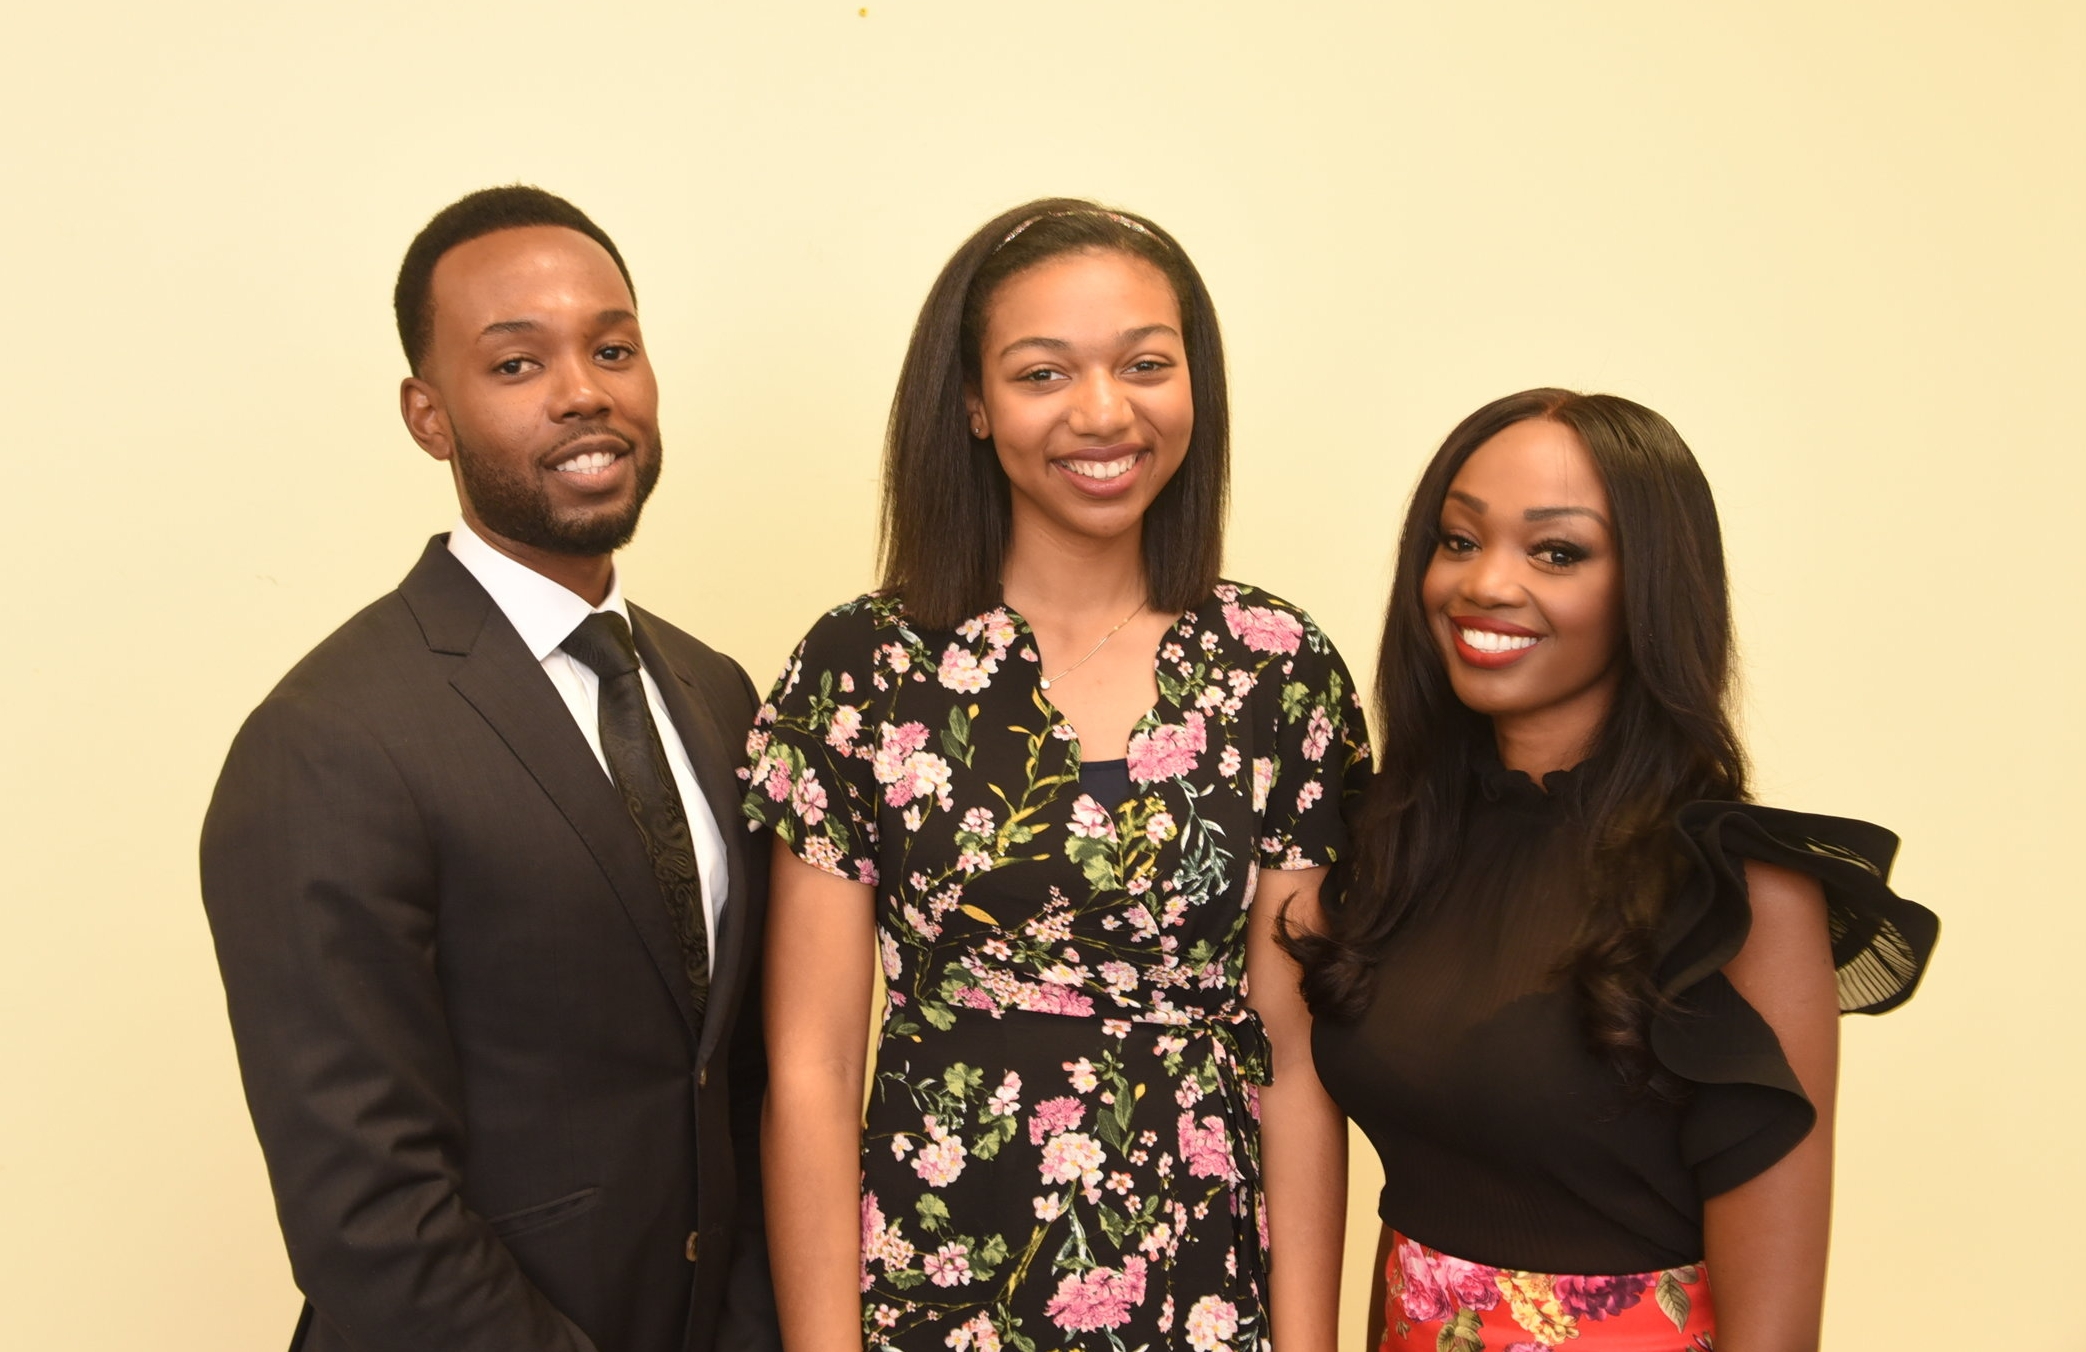 Siblings Kenneth and Stacy-Ann Buchanan (r) presented a scholarship to Kendell Parks